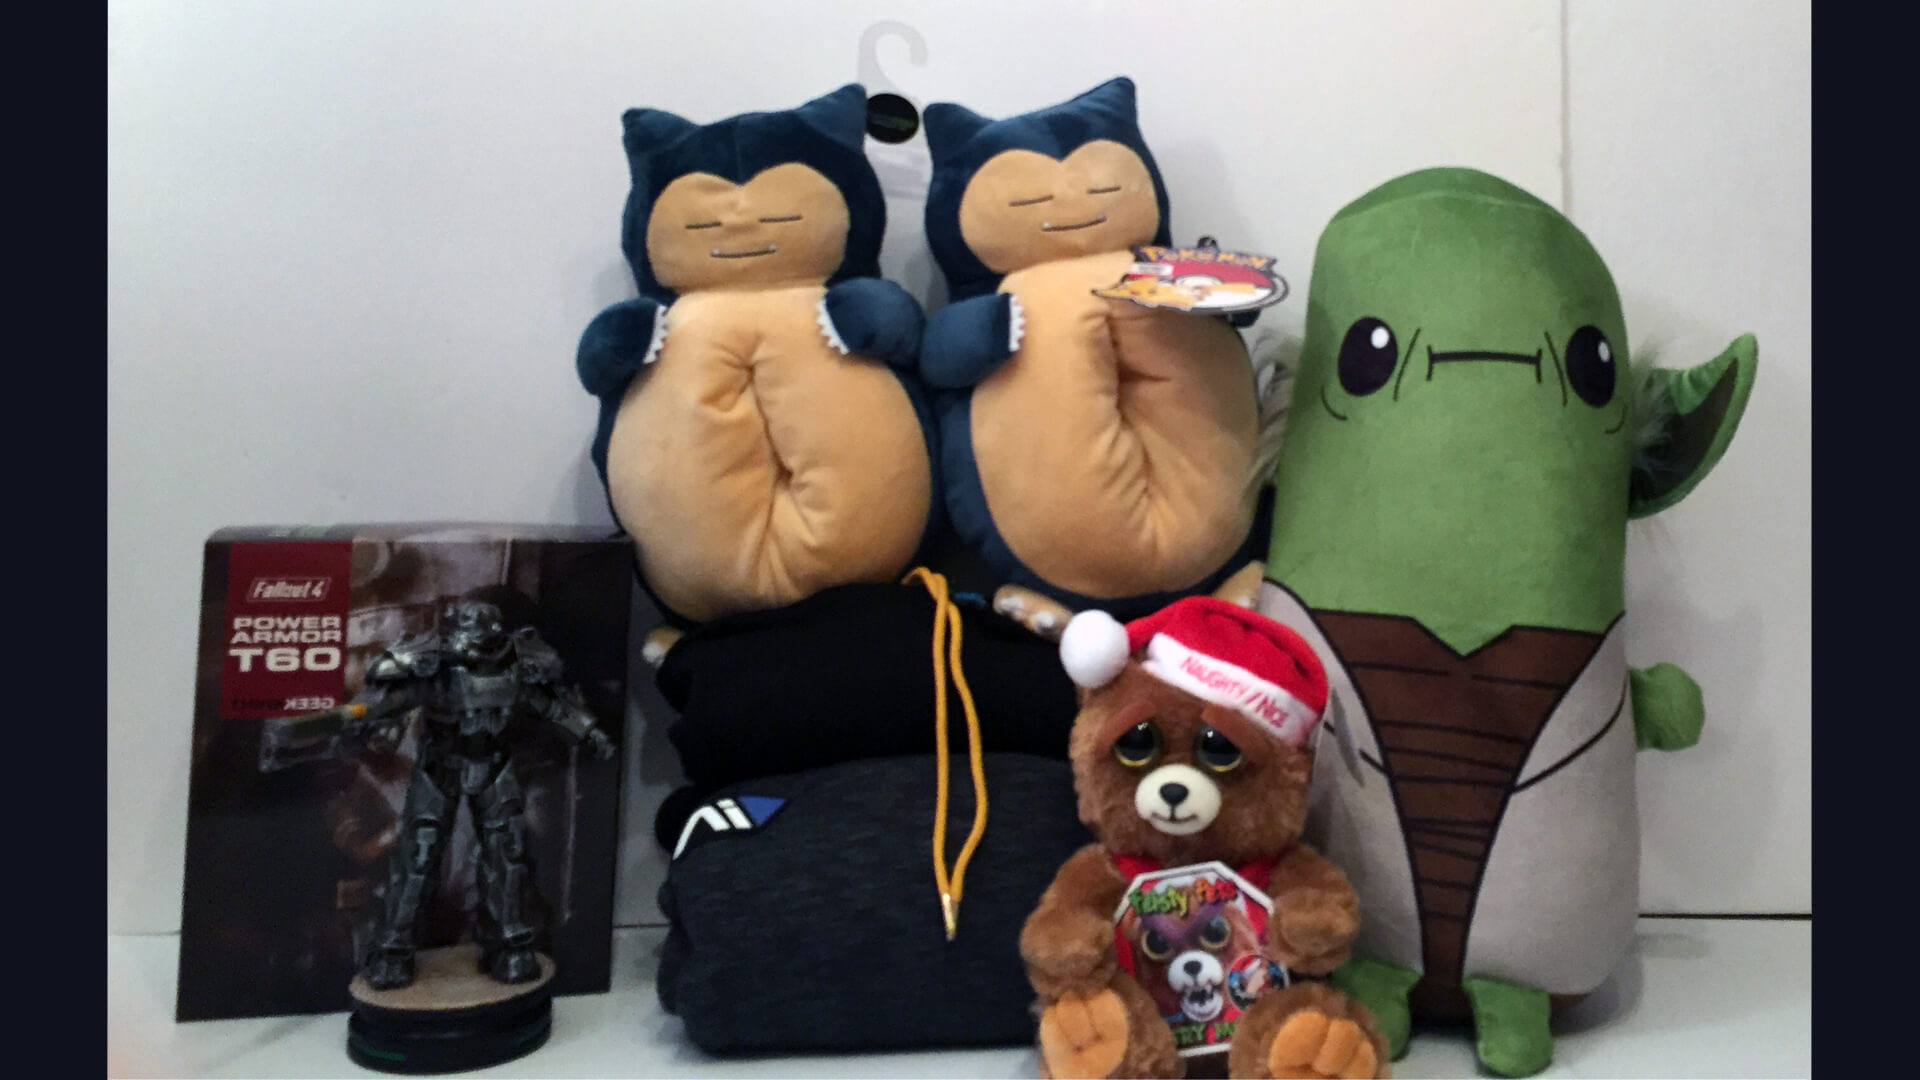 ThinkGeek: Snorlax, Mass Effect, Fallout 4 and more! - Review